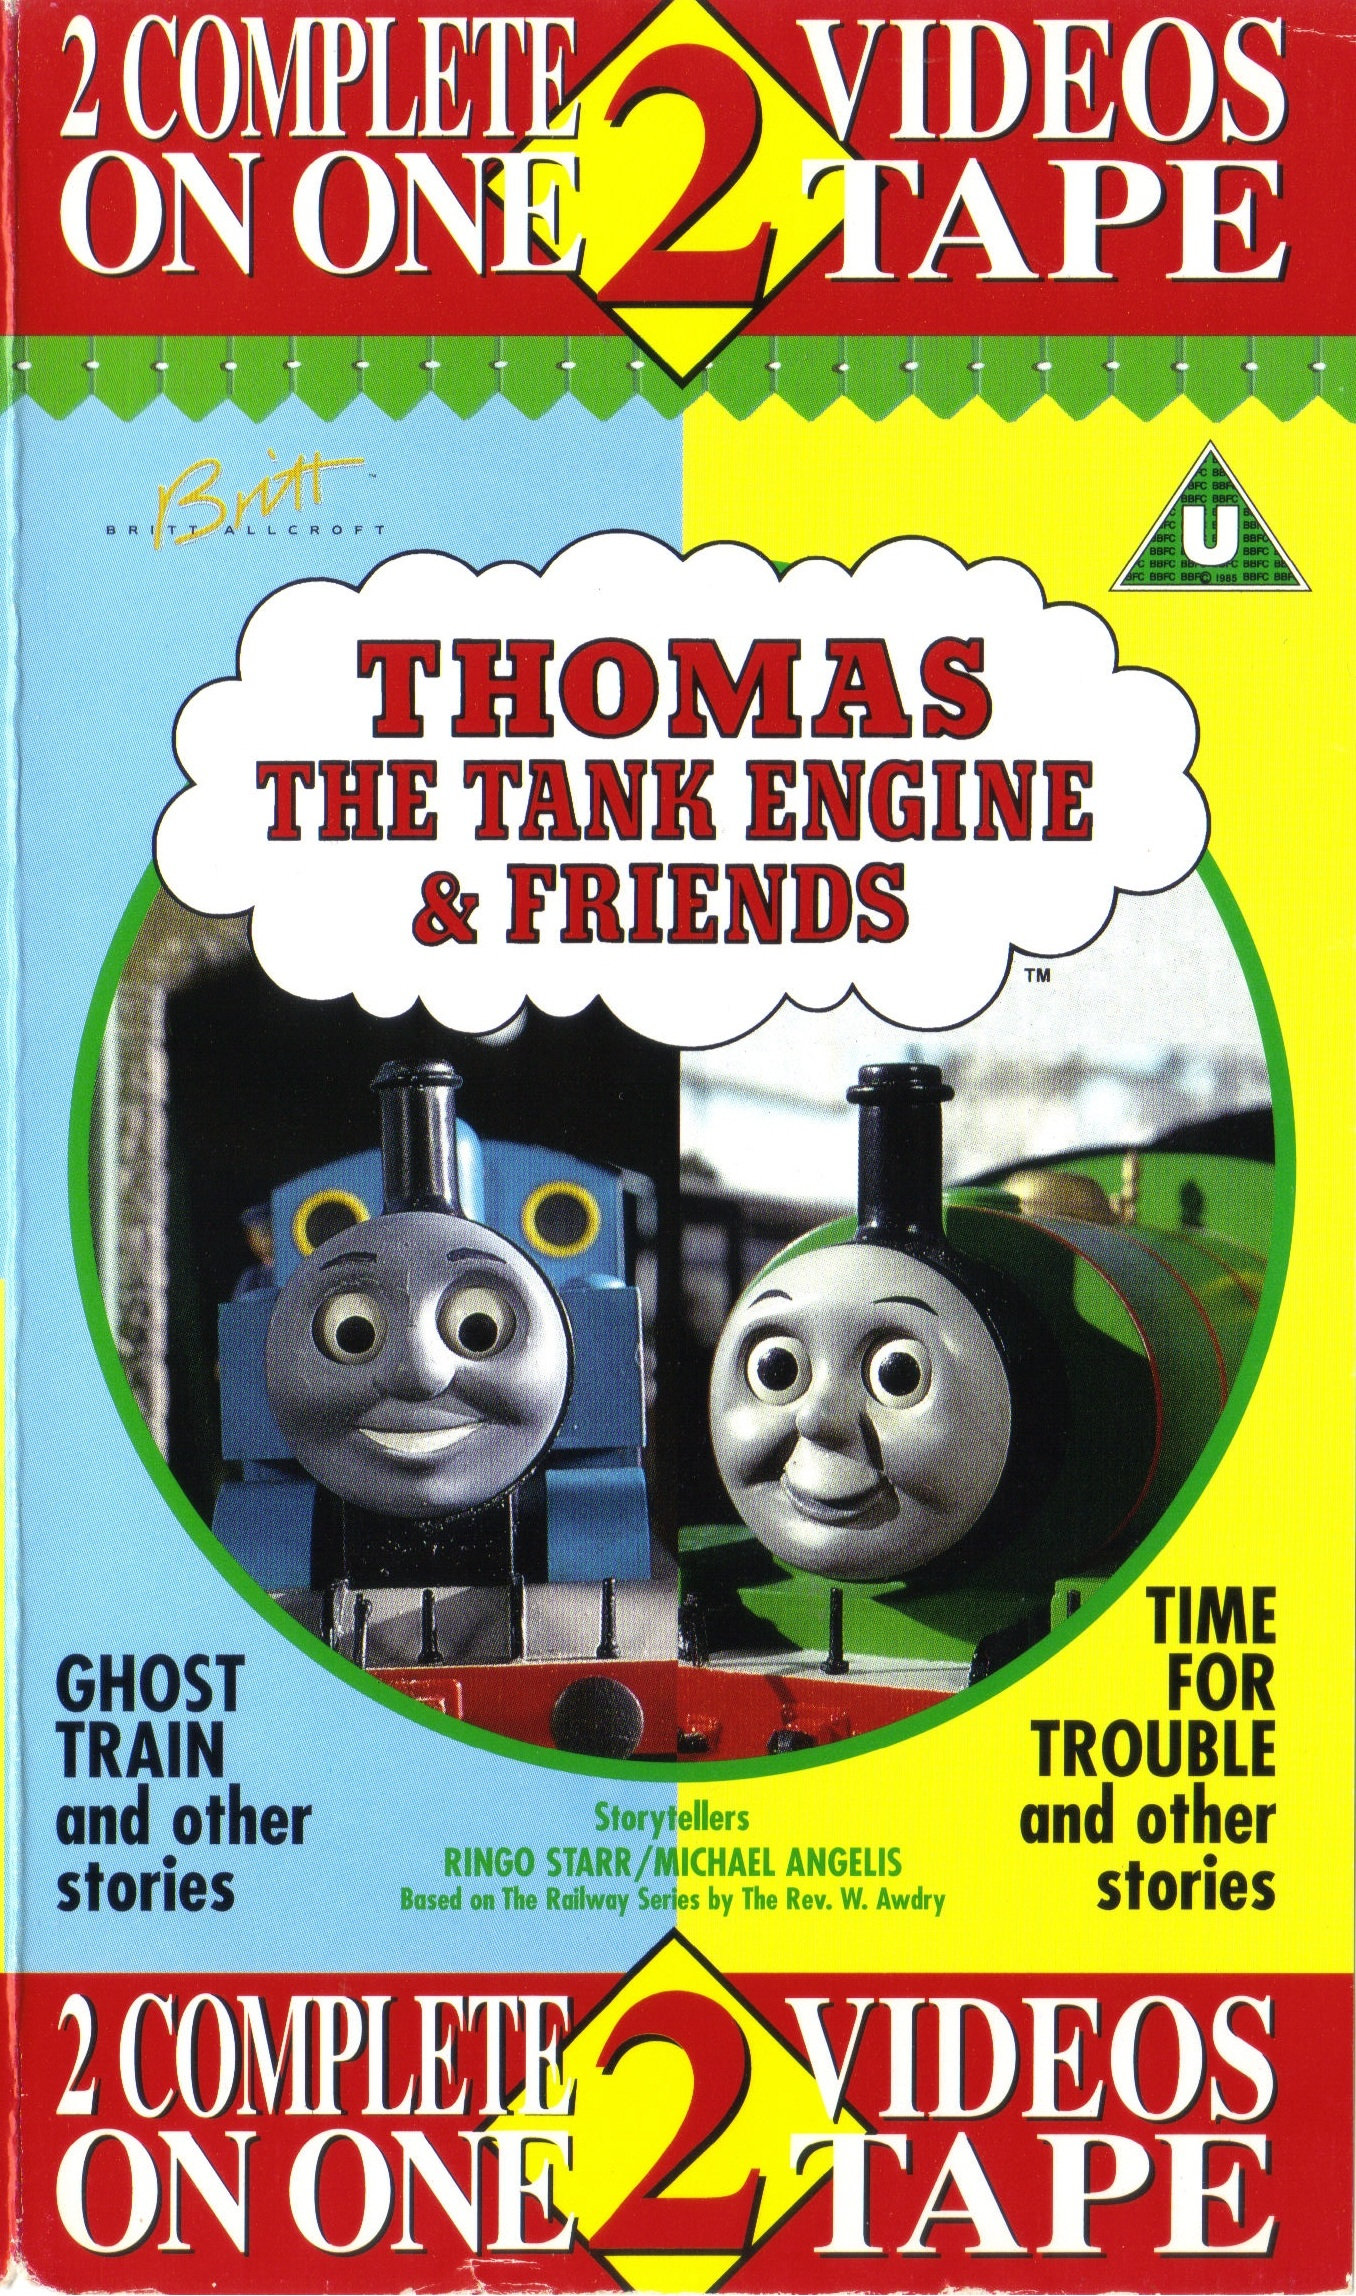 Ghost Train and other stories/Time for Trouble and other stories